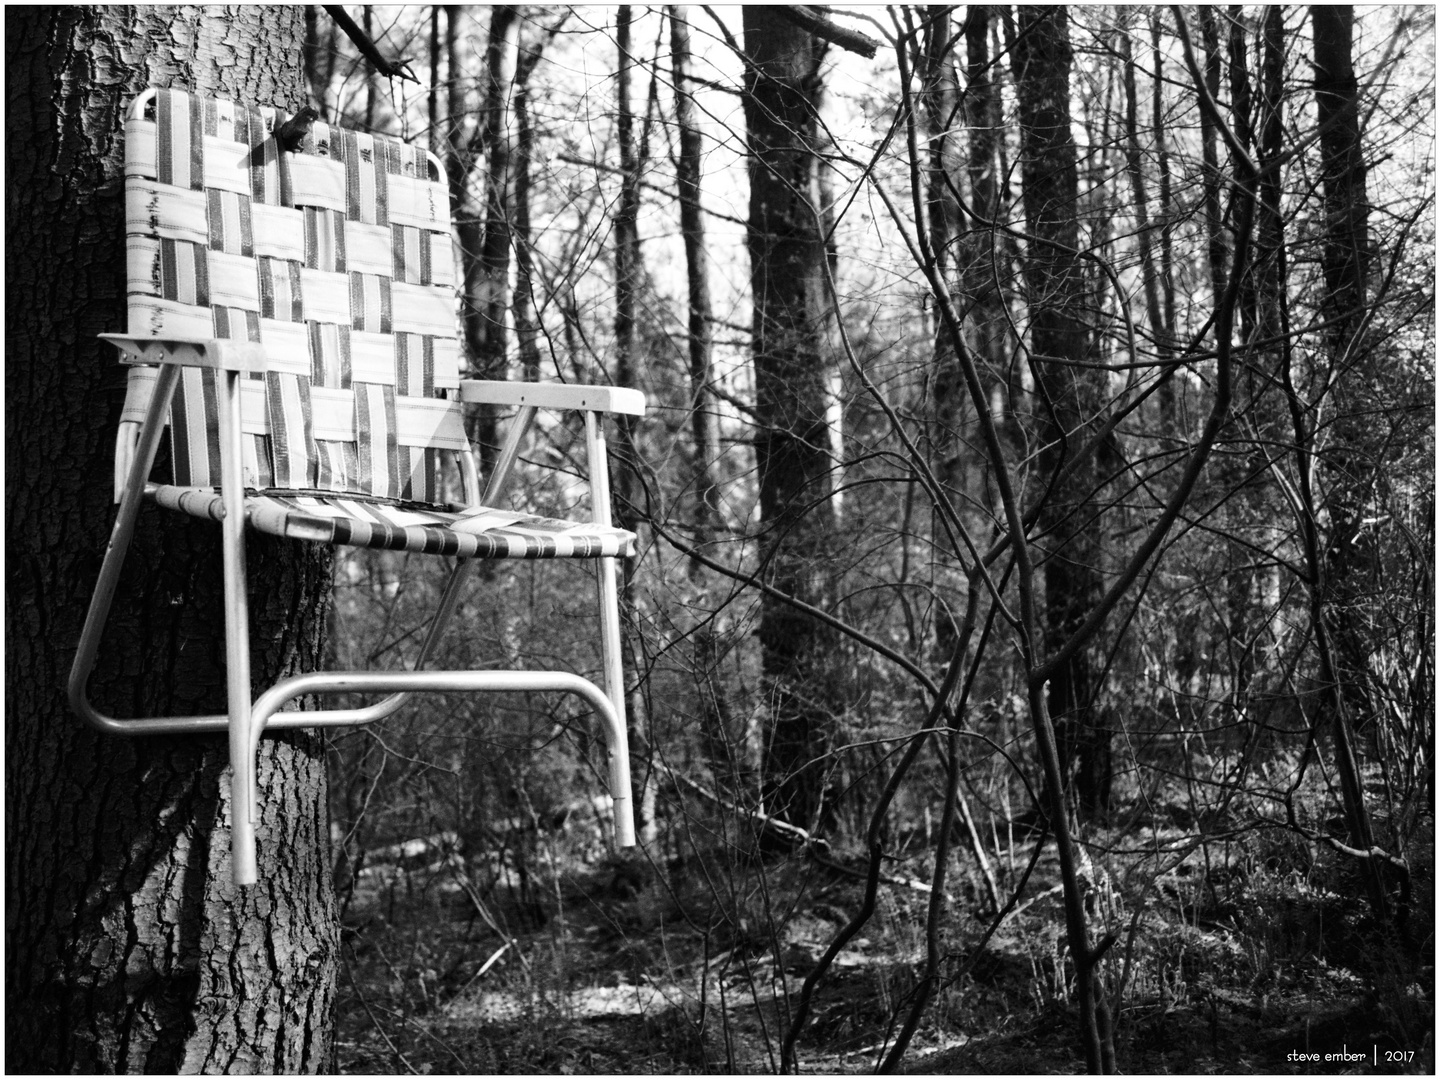 A Chair in the Forest